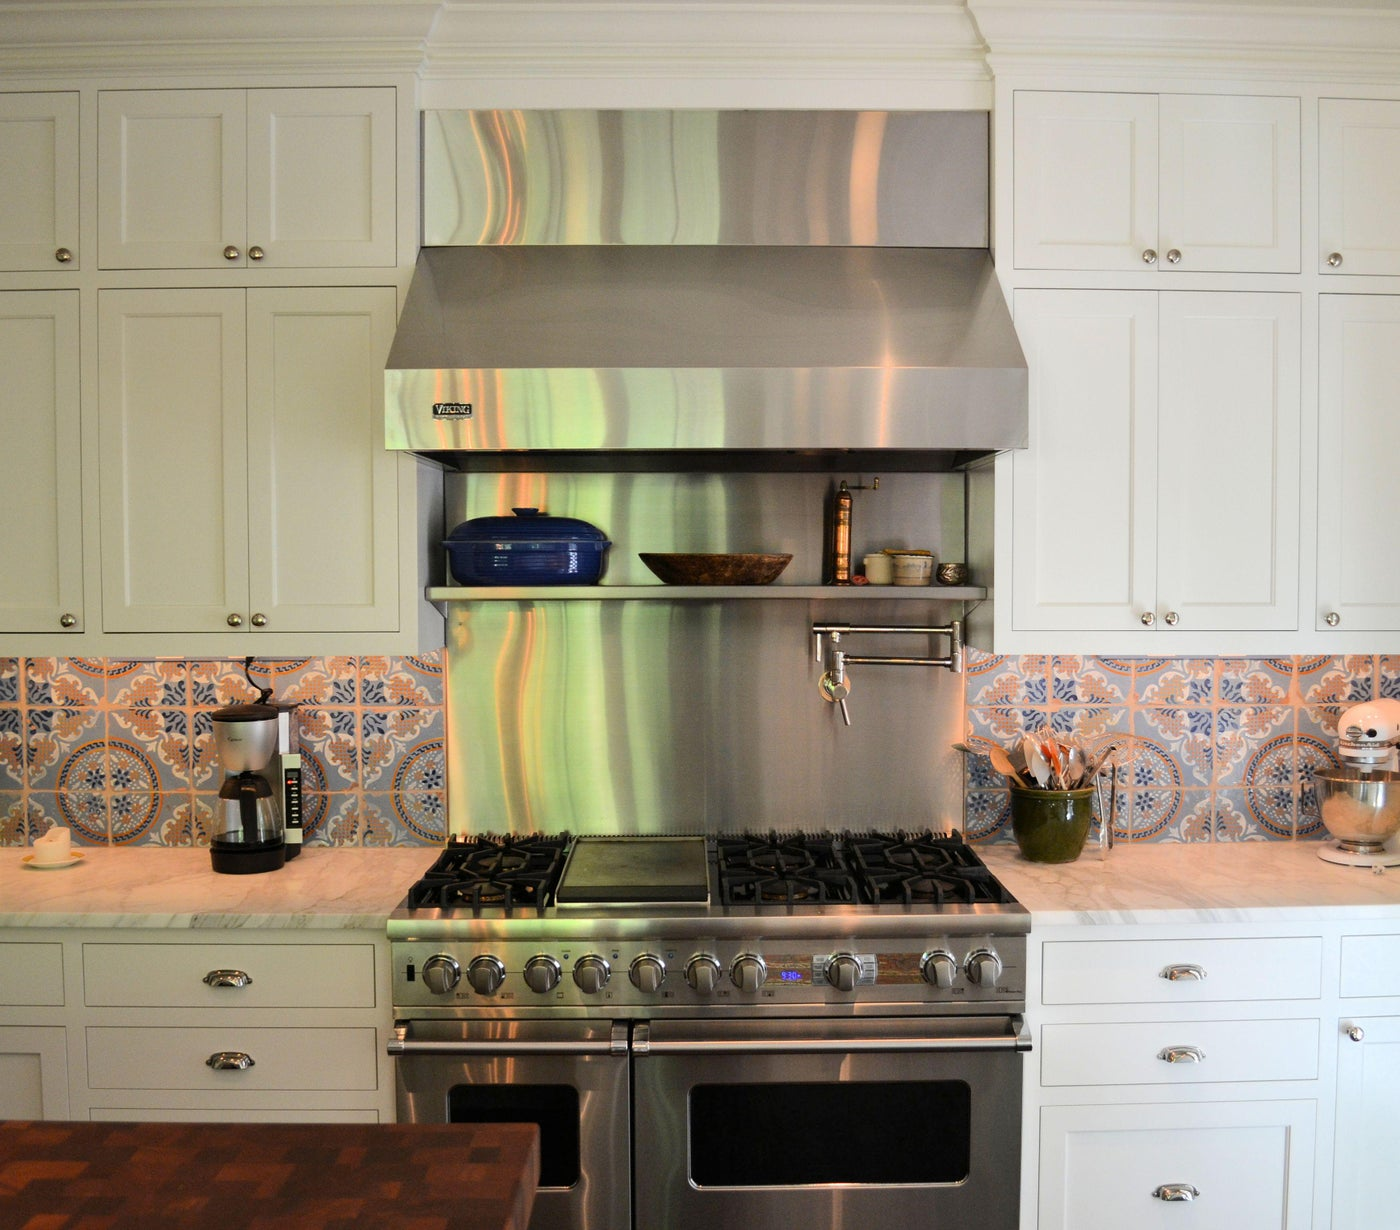 Blue and white kitchen, white cabinets and blue Mediterranean-style backslash